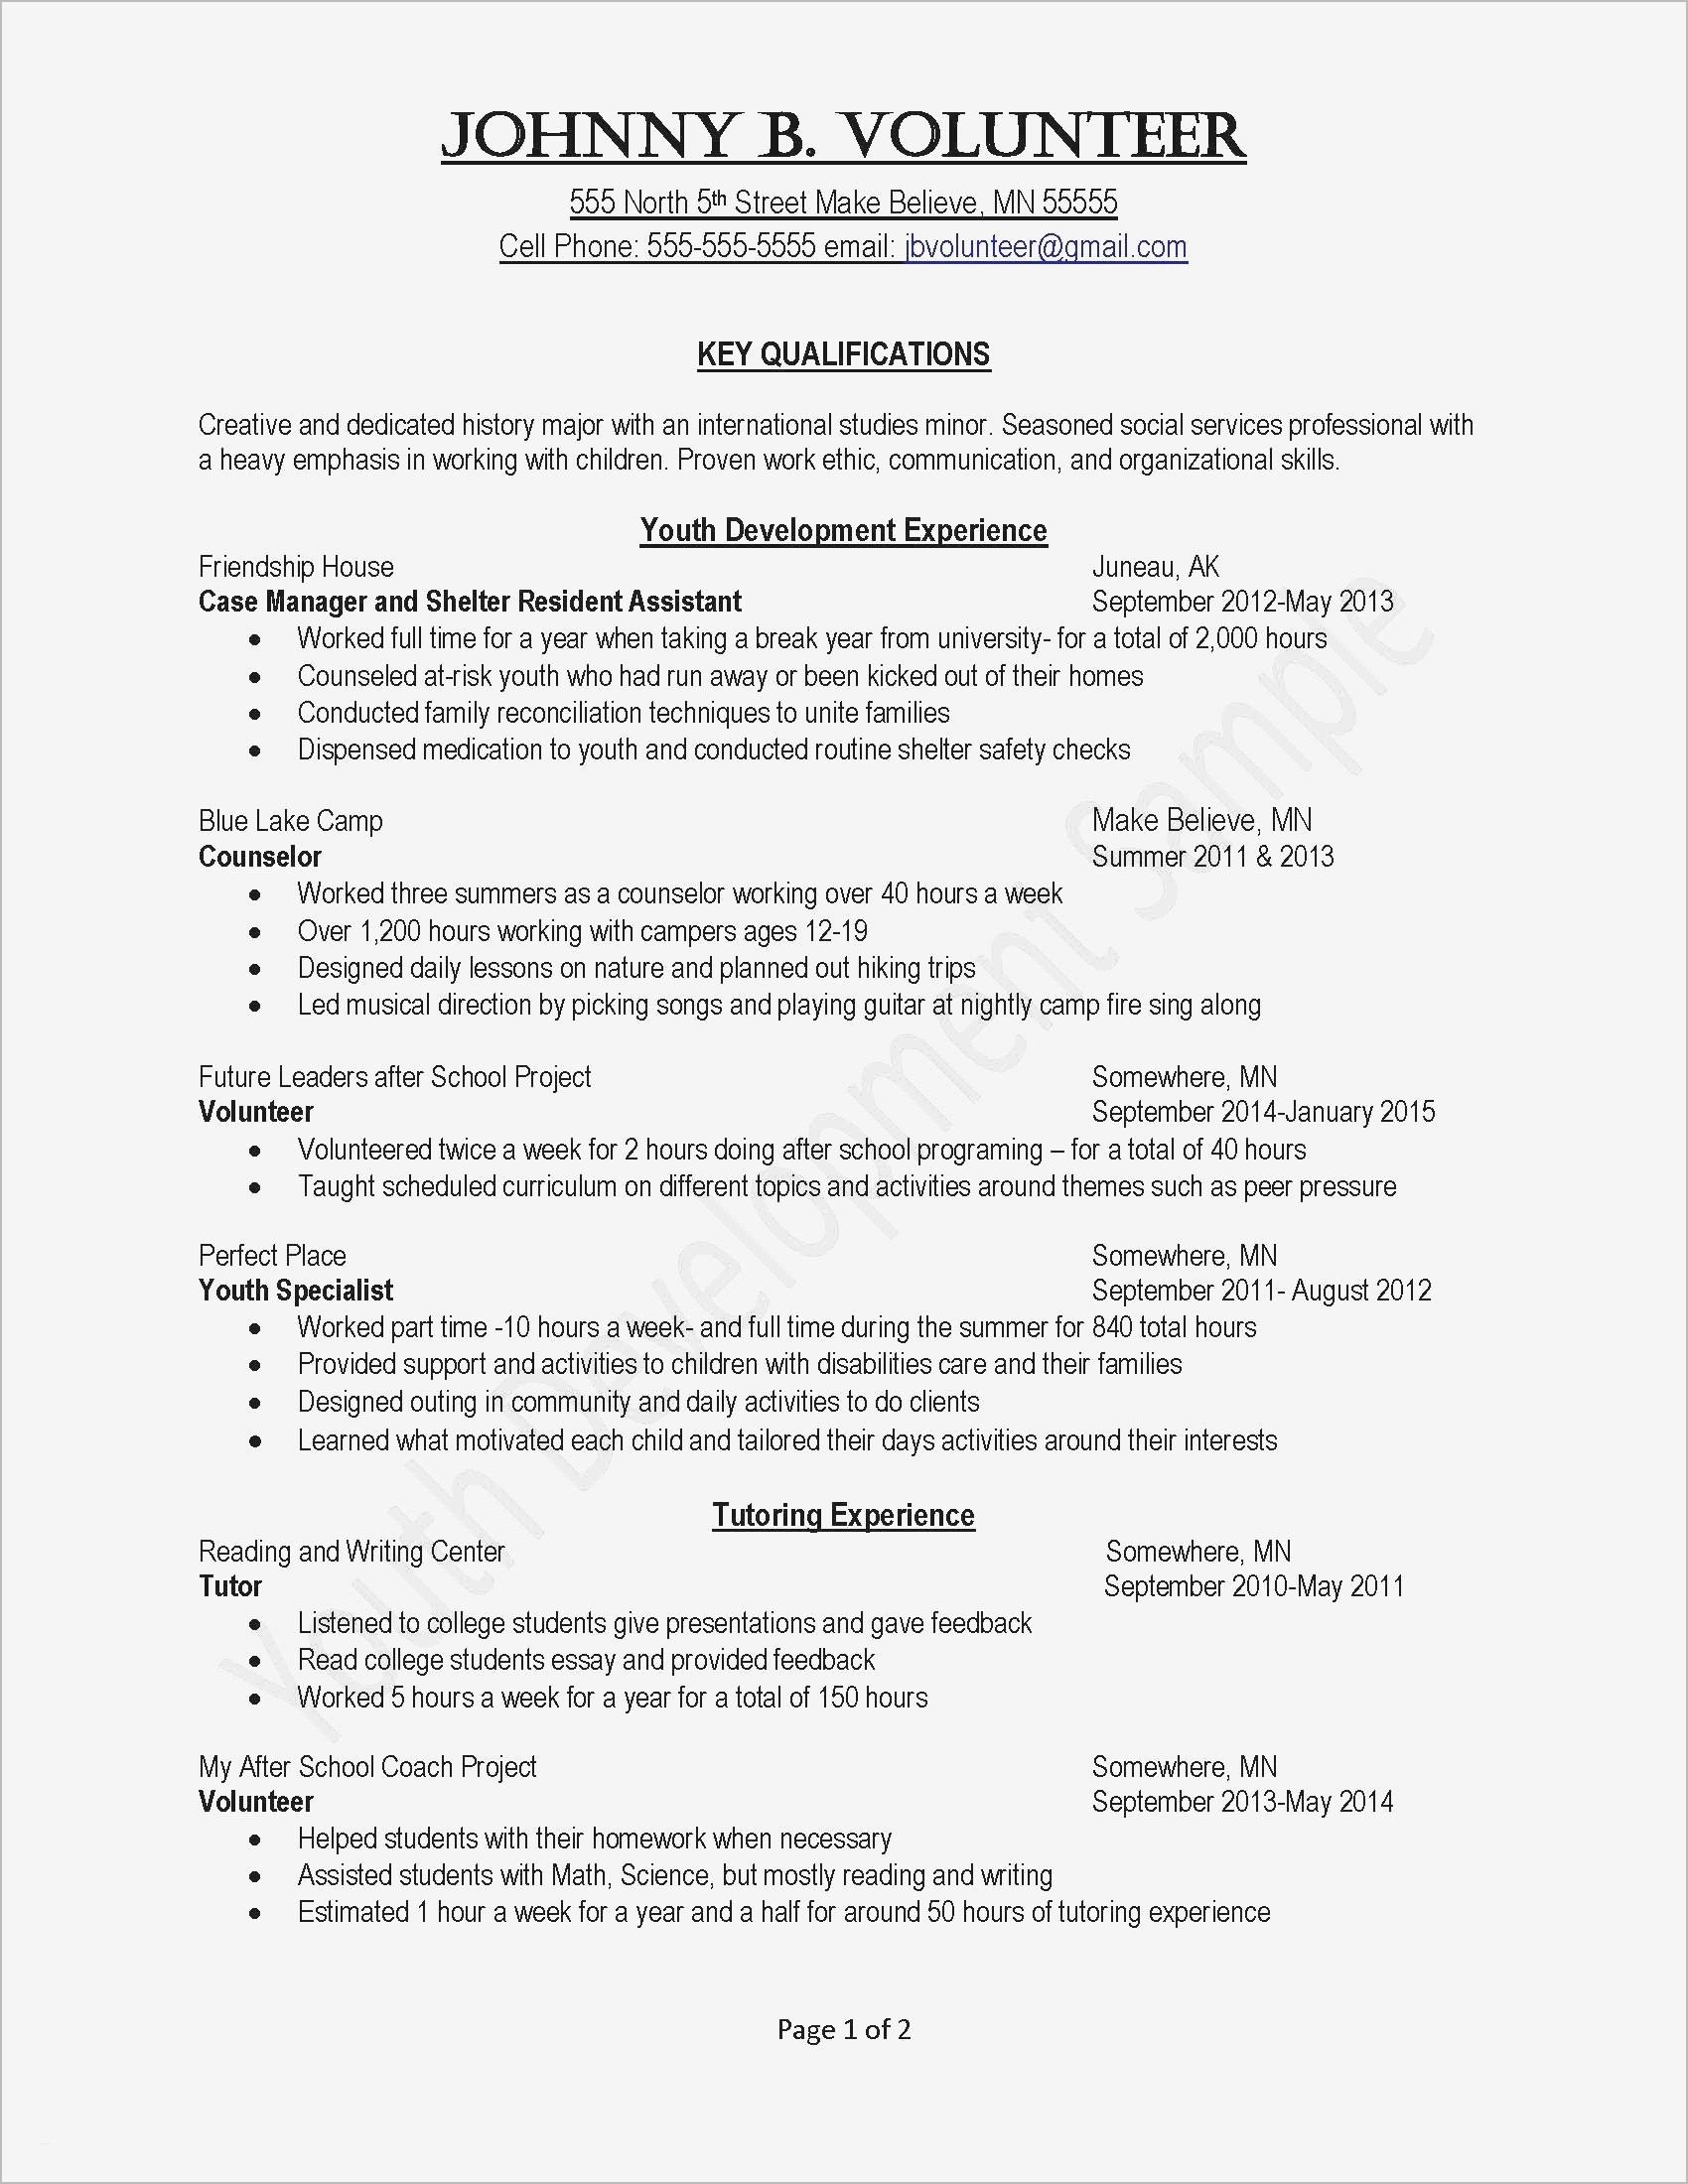 Basic Cover Letter Template Free - Free Templates for Resumes and Cover Letters Best Job Fer Letter